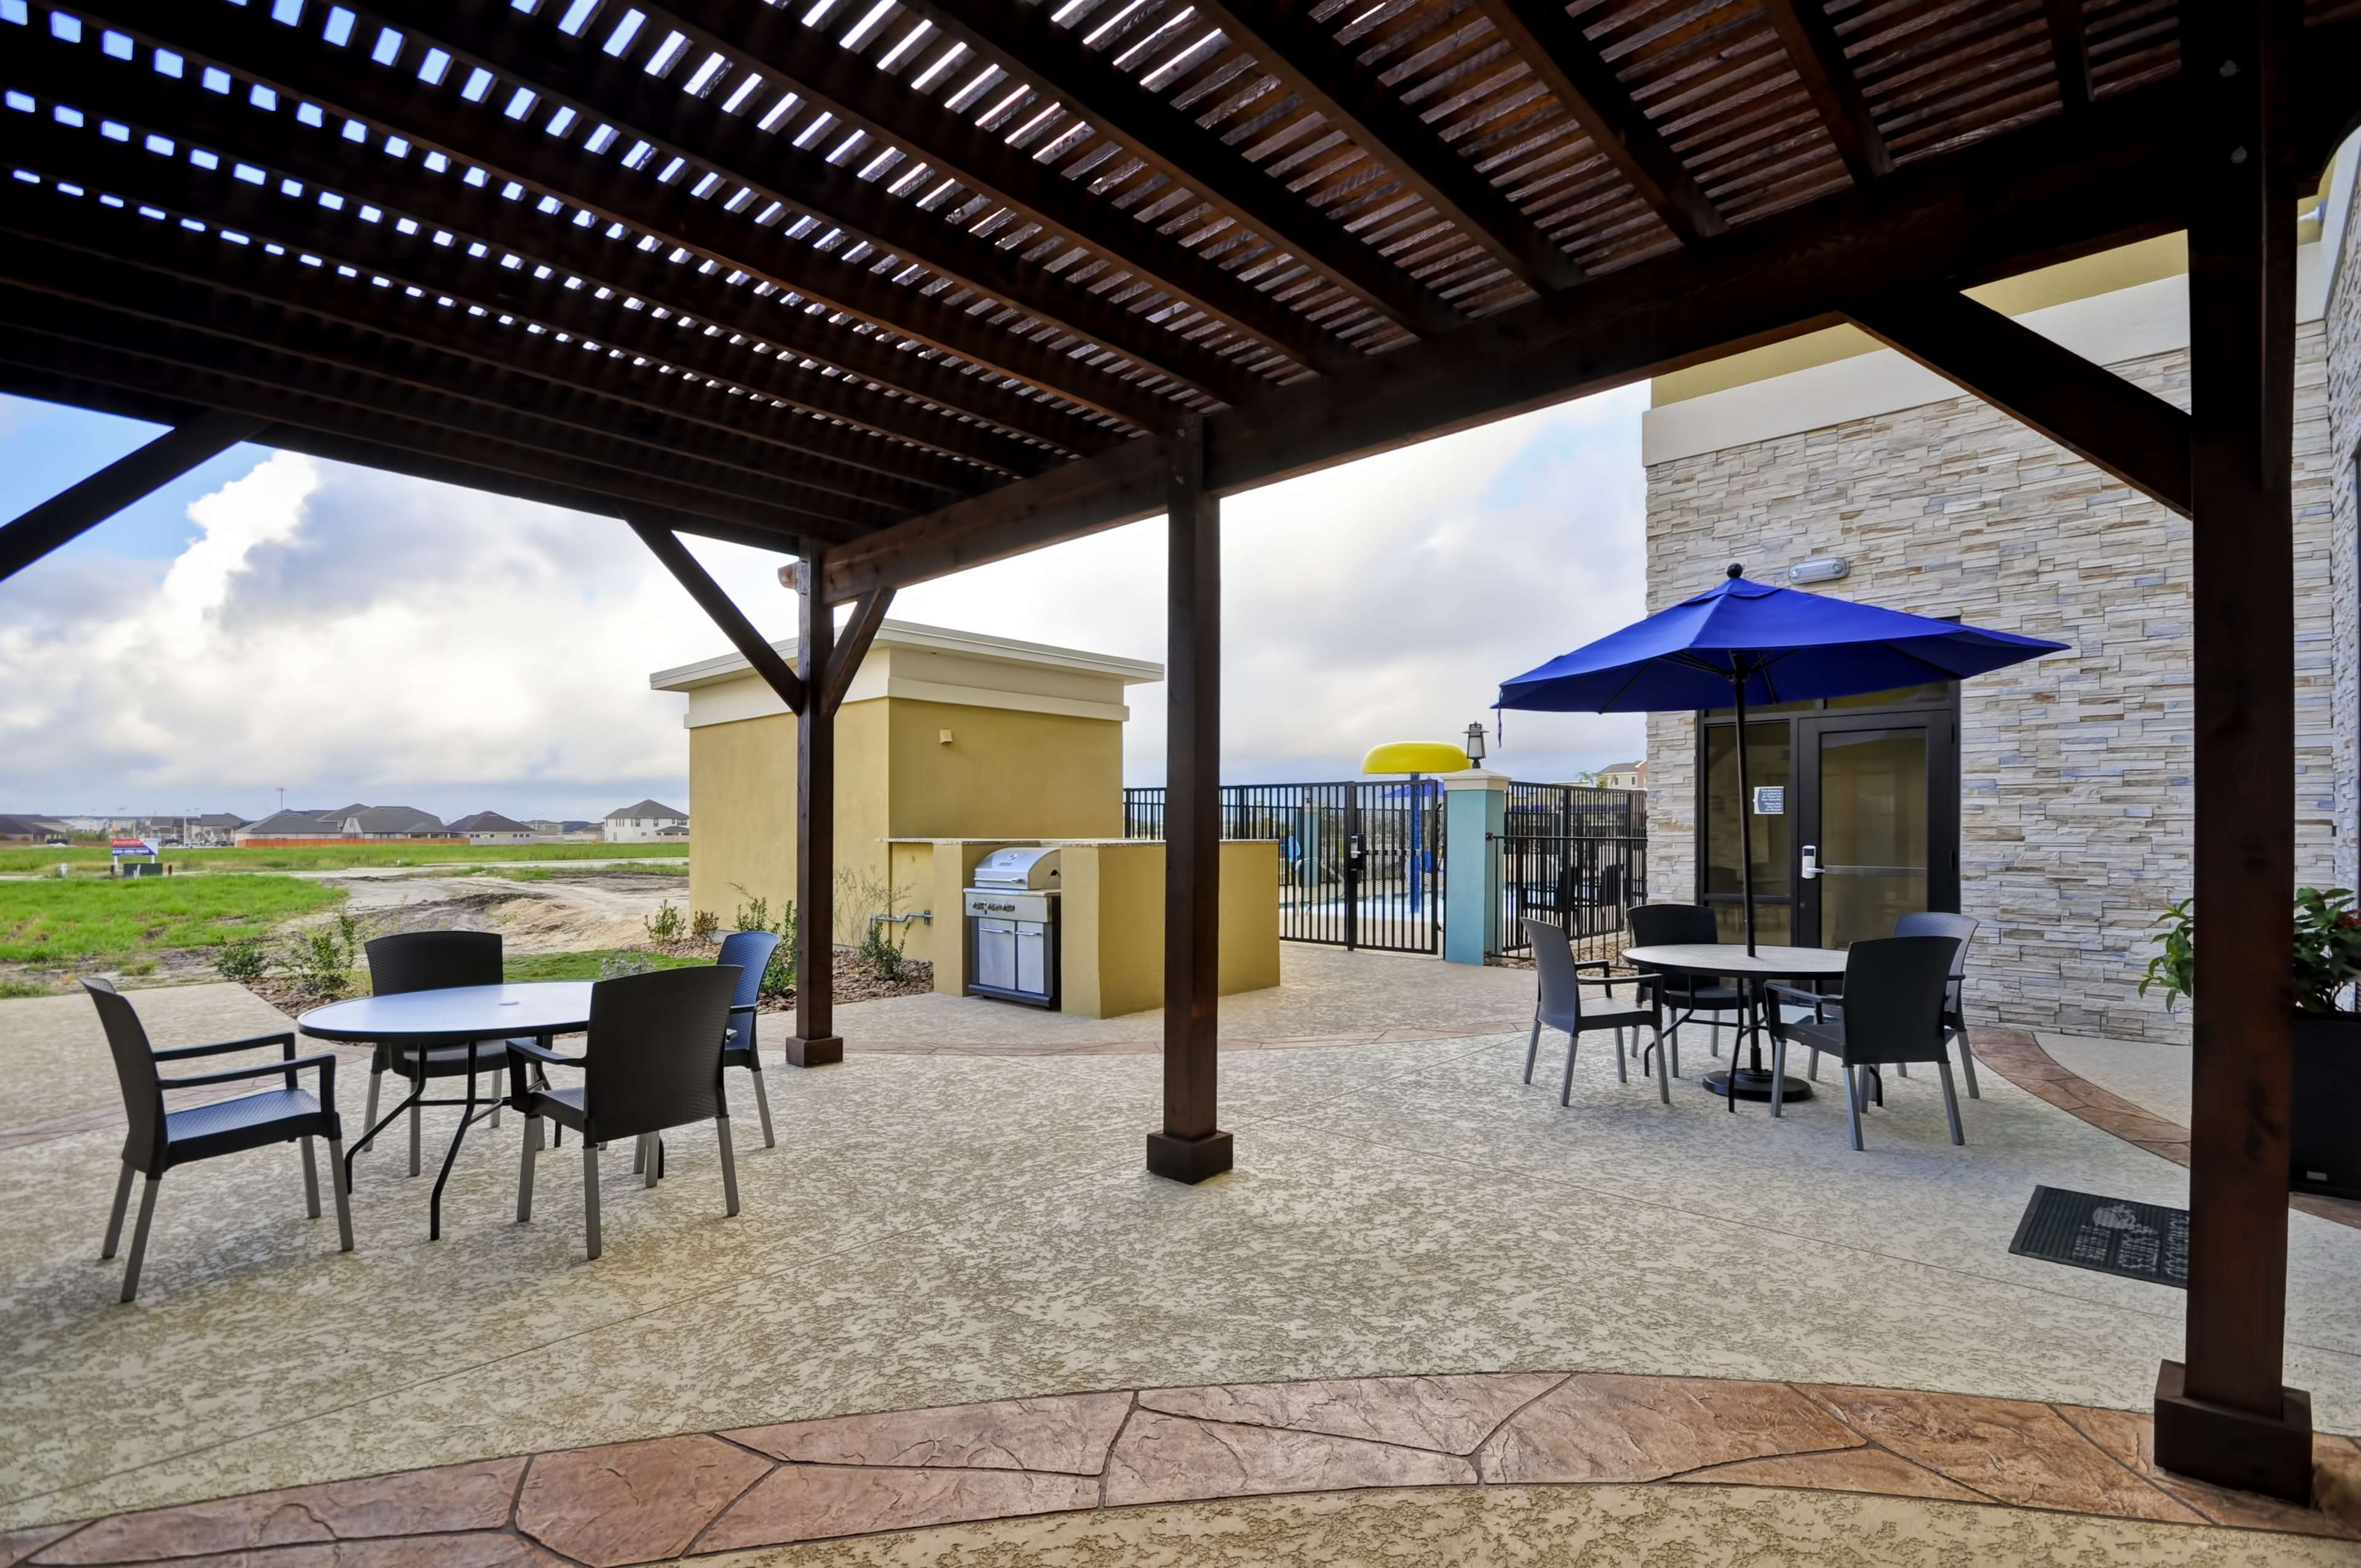 Homewood Suites by Hilton New Braunfels image 4